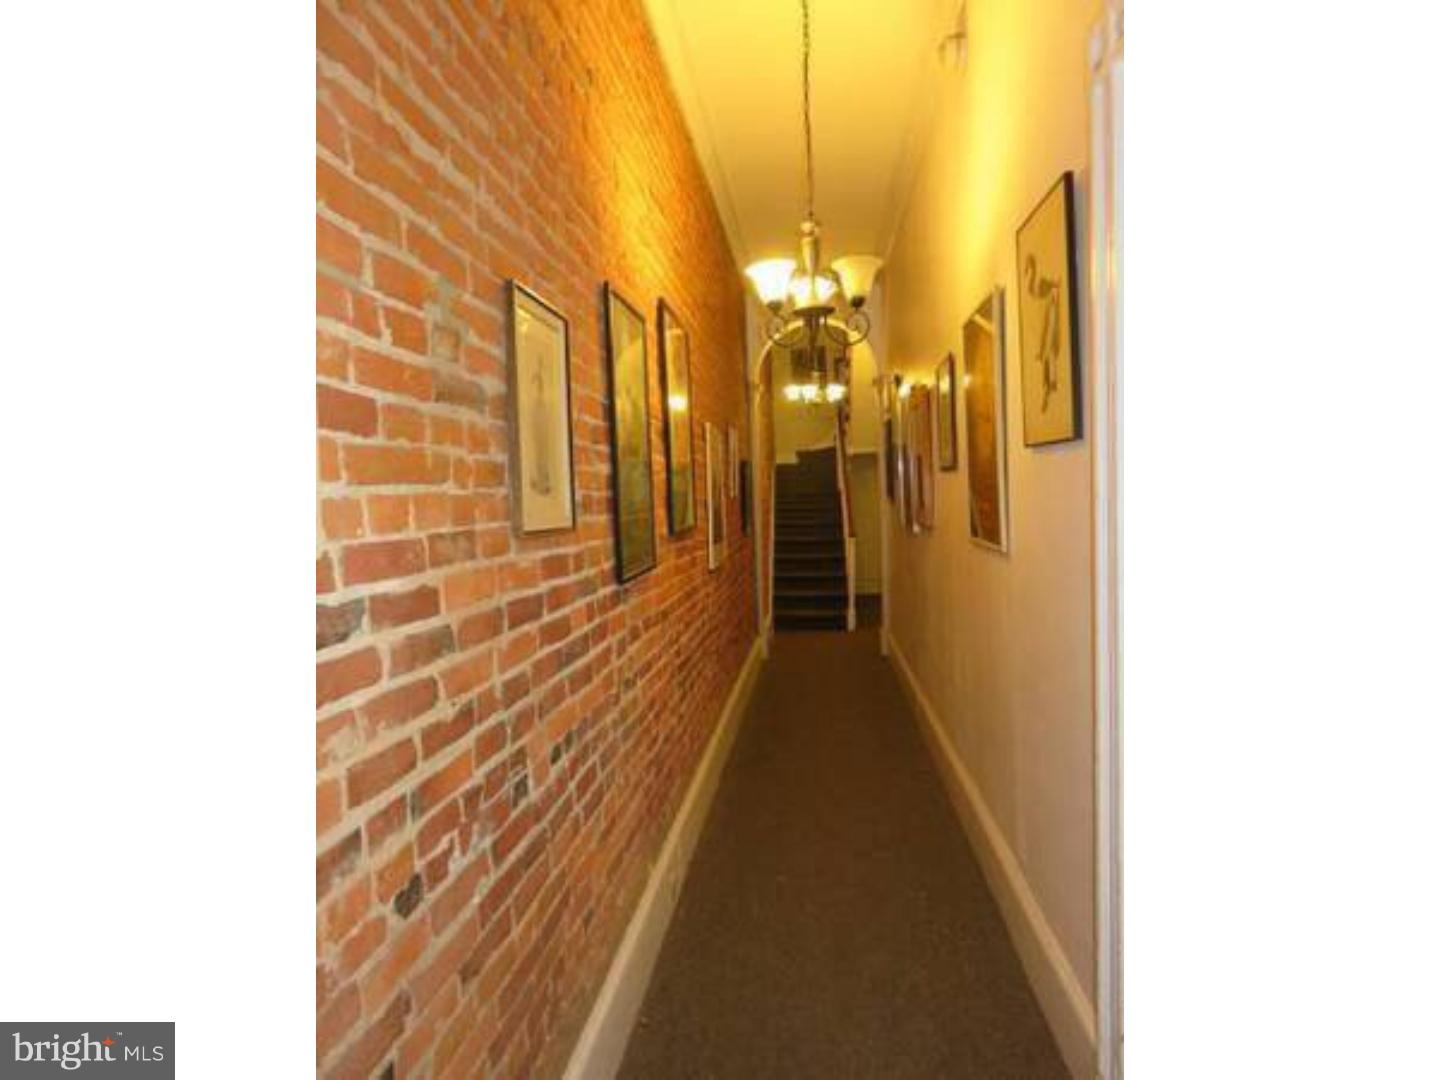 FOR A LIMITED TIME ENJOY ONE MONTH FREE RENT on a 13 month lease! Fantastic and spacious light filled 2 bedroom in the heart of WASHINGTON SQUARE. All open living and dining area, each bedroom is spacious and gracious with large tile bath. Enjoy living just minutes from some of the city's best restaurants and night life, and within easy walking distance to Jefferson Hospital and Pennsylvania Hospital.